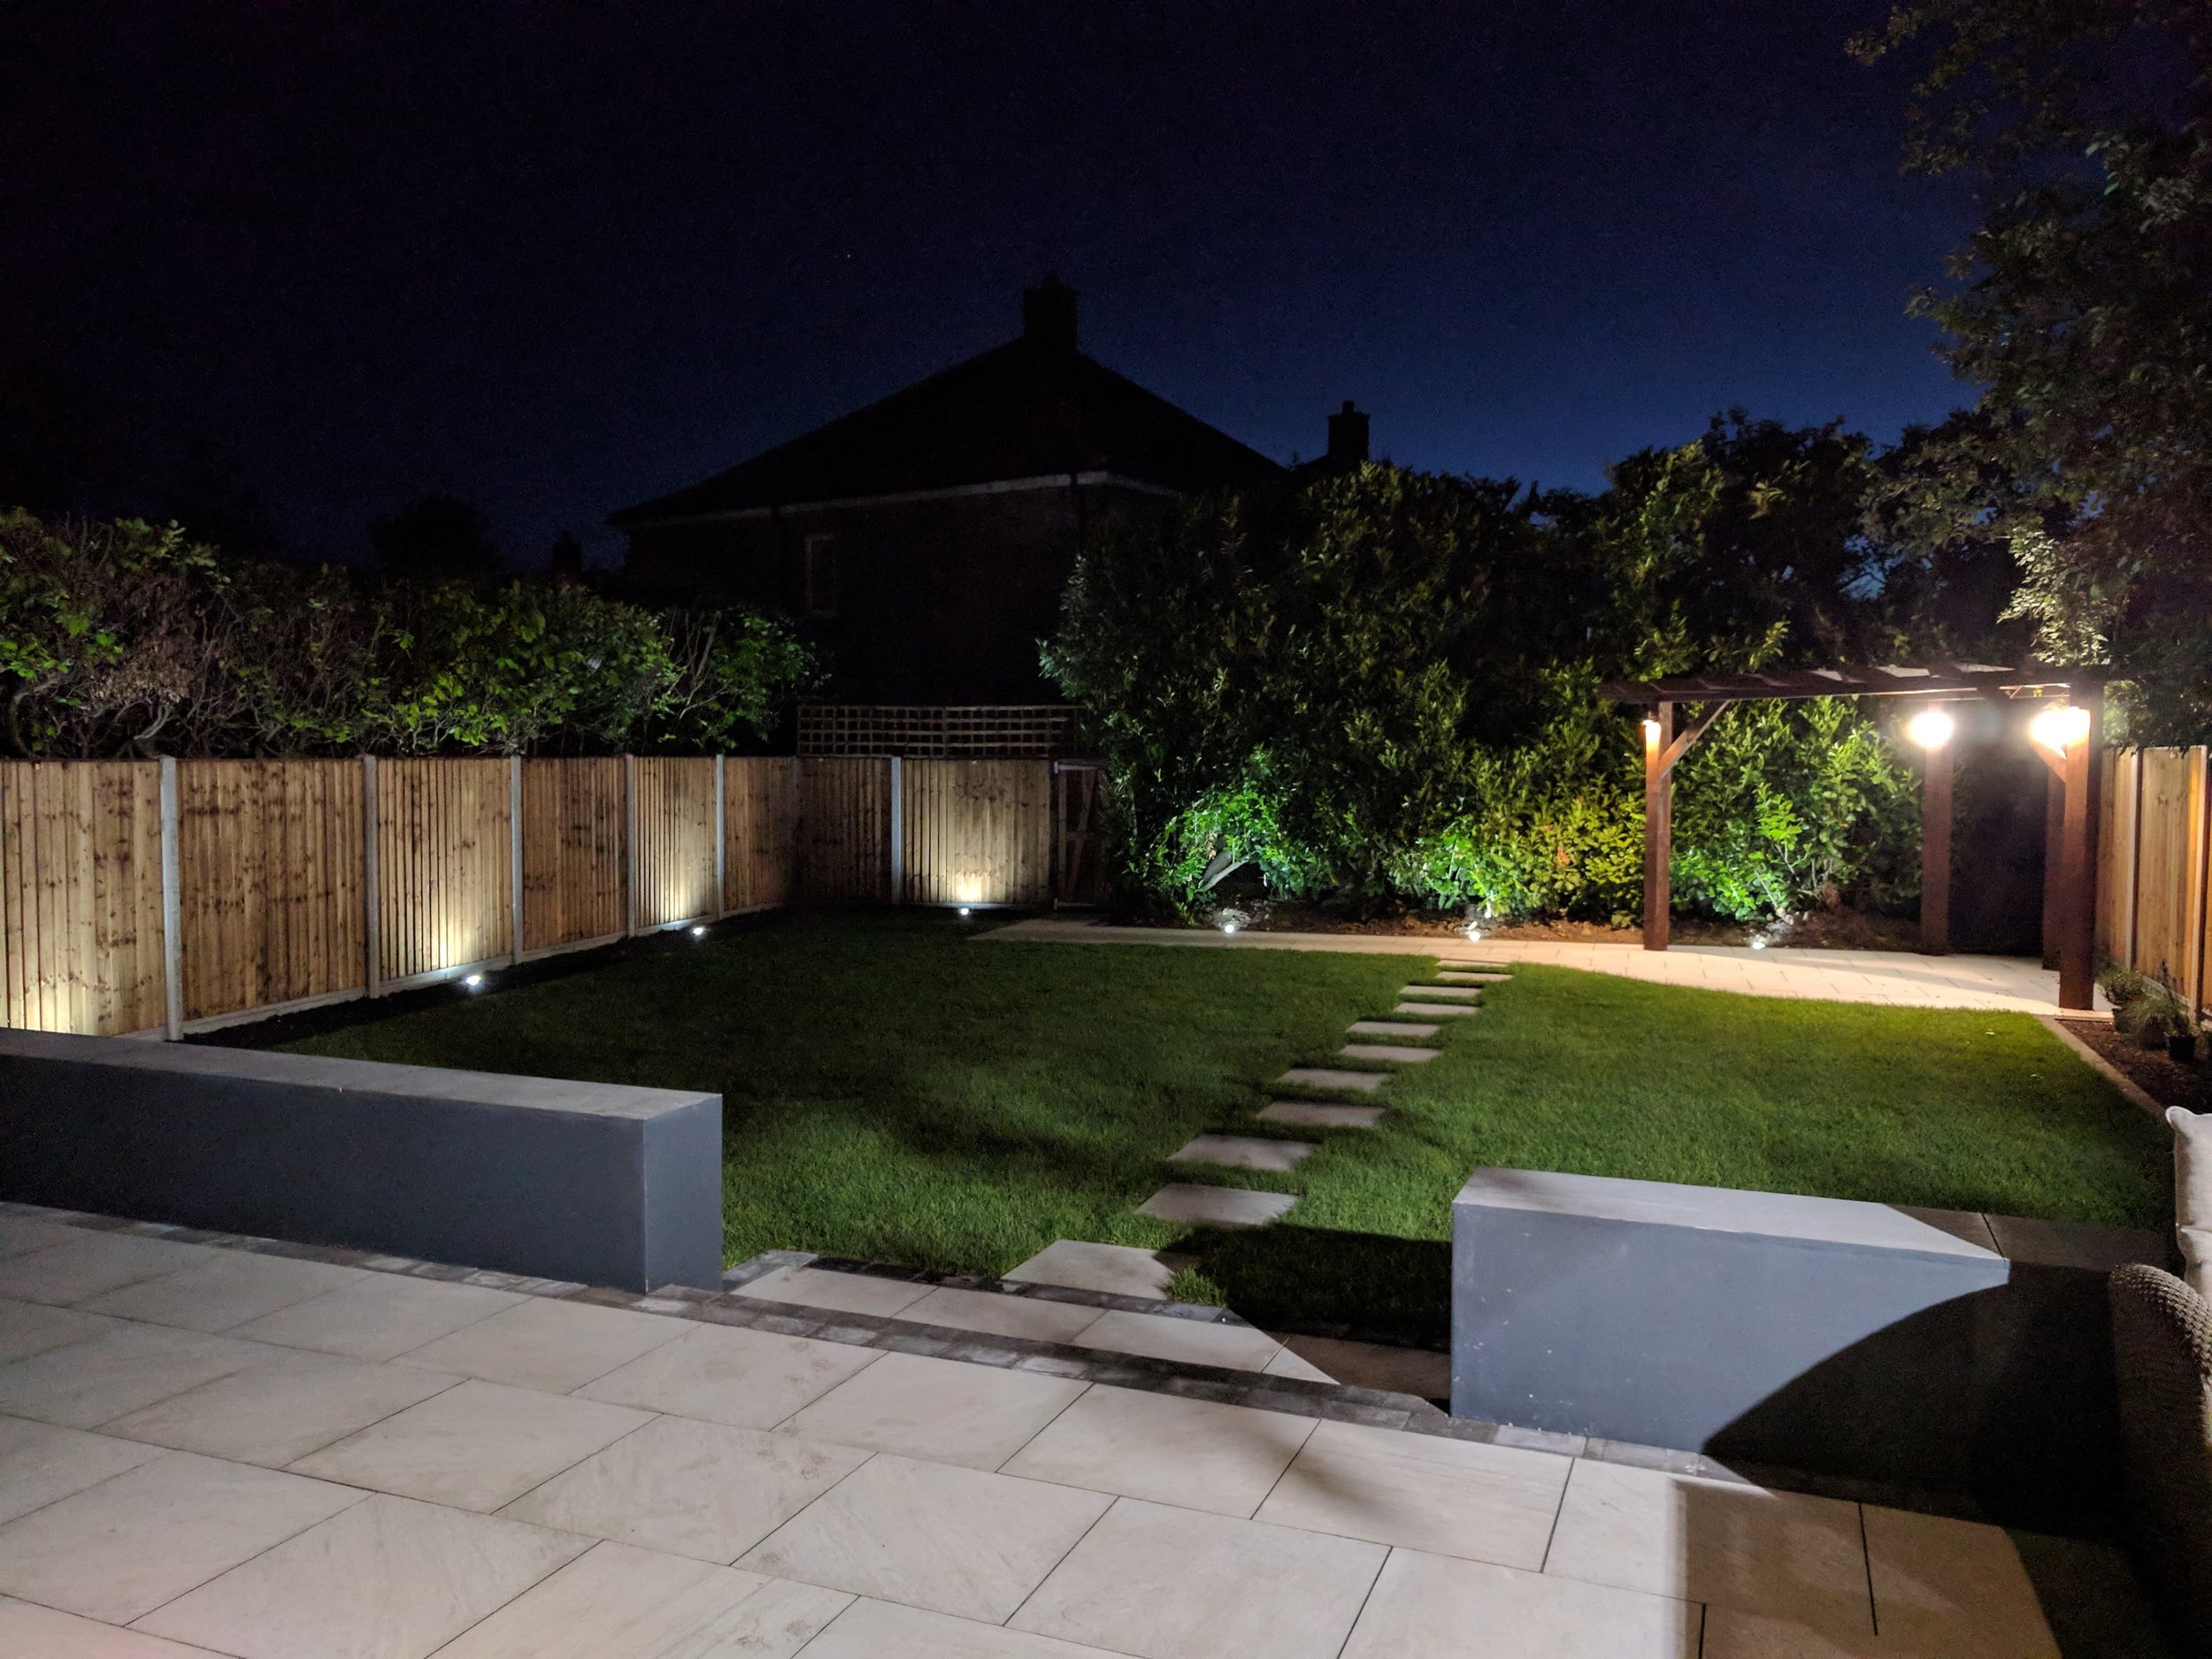 installing lights around this garden and new patio makes it all very useable at night.